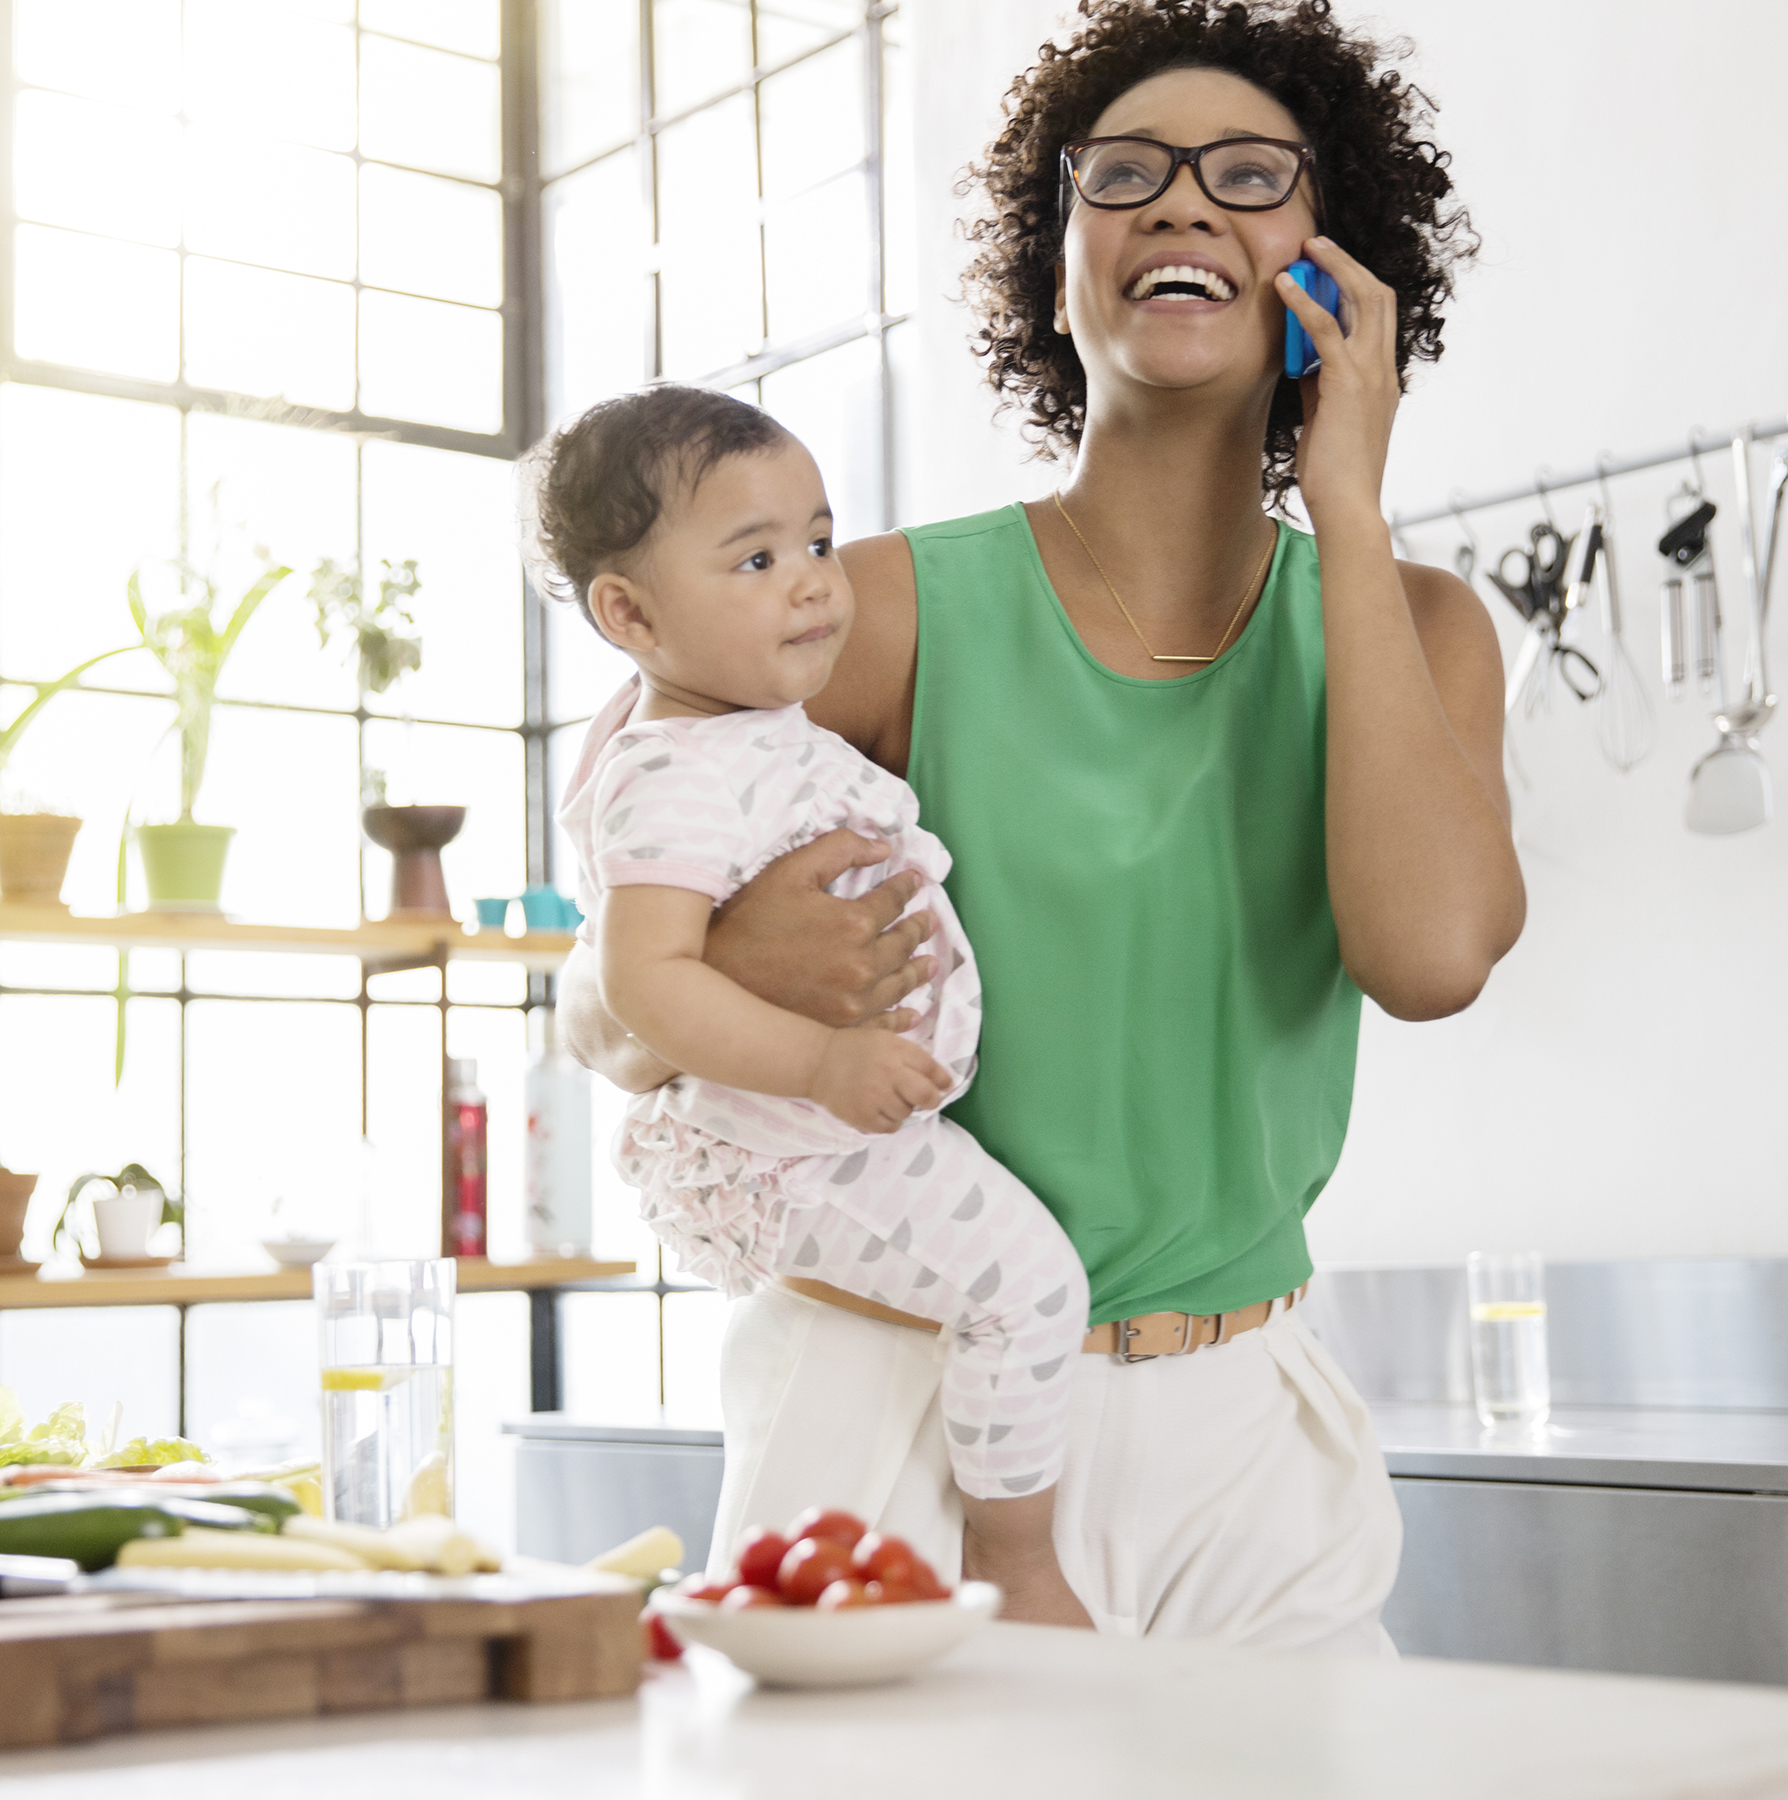 Mom on work call with daughter in kitchen